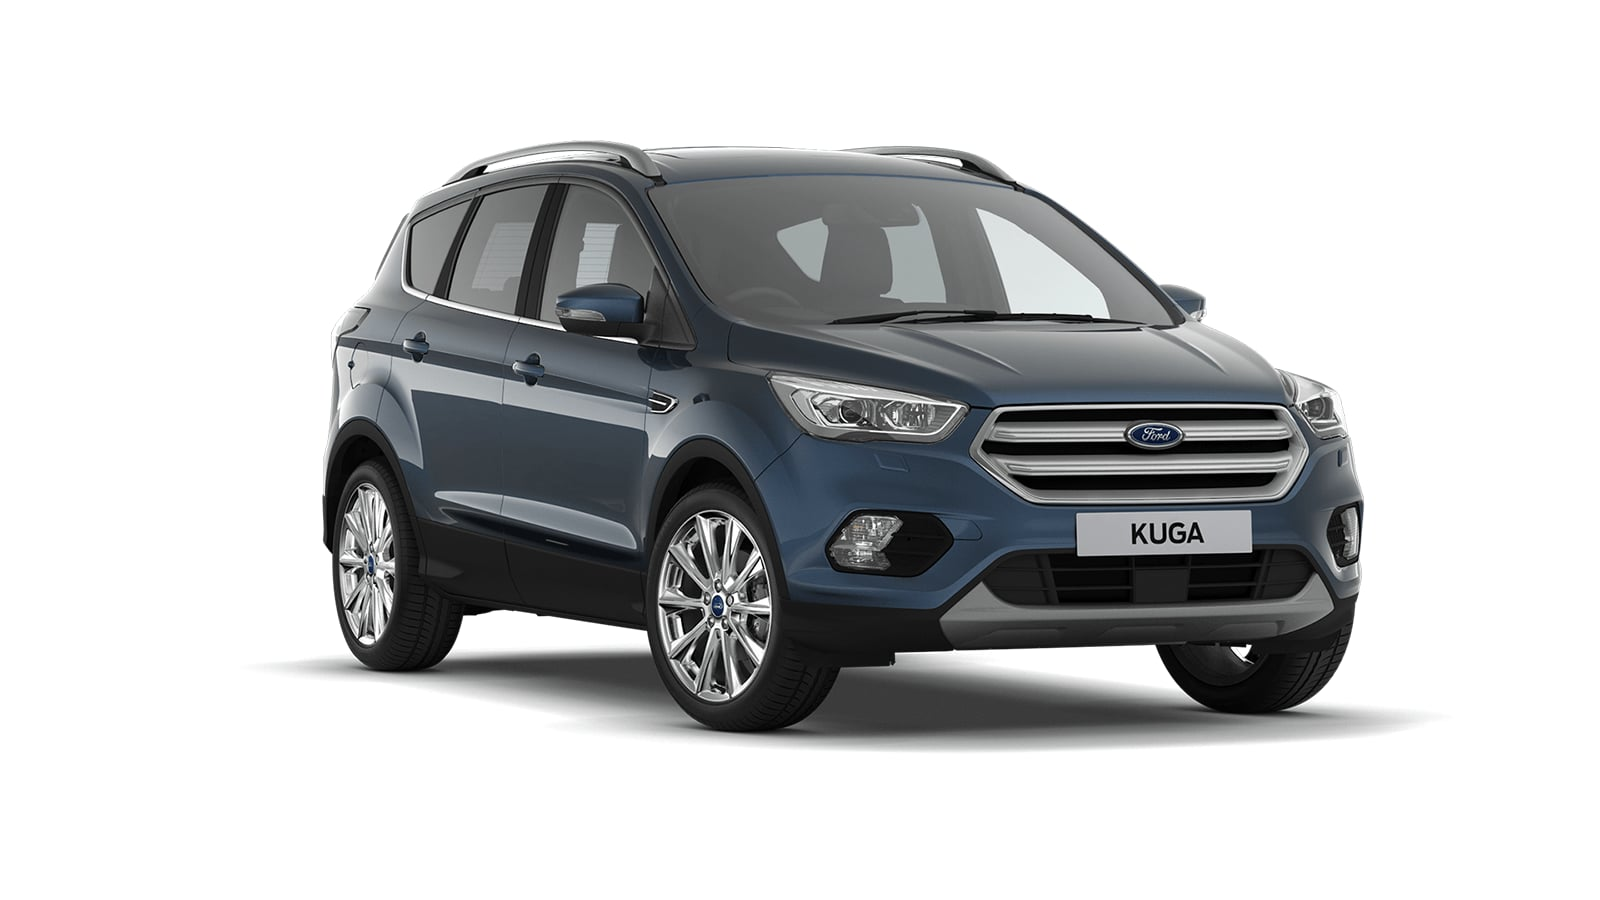 Ford Kuga at Hawkins Motors